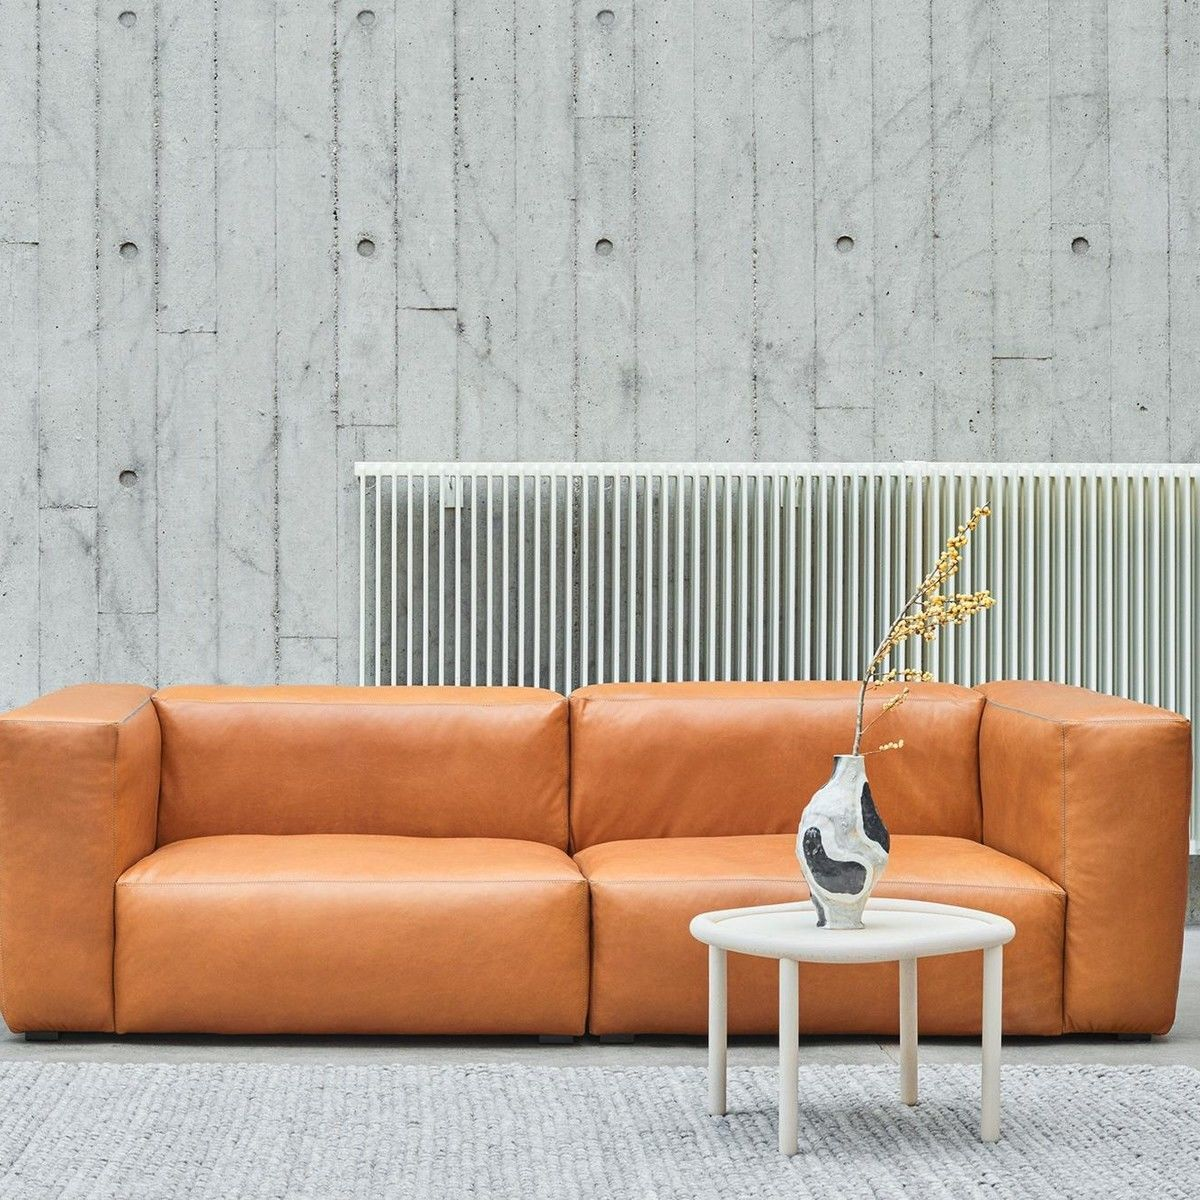 Mags Soft 2 5 Seater Leather Sofa Hay Ambientedirect Com